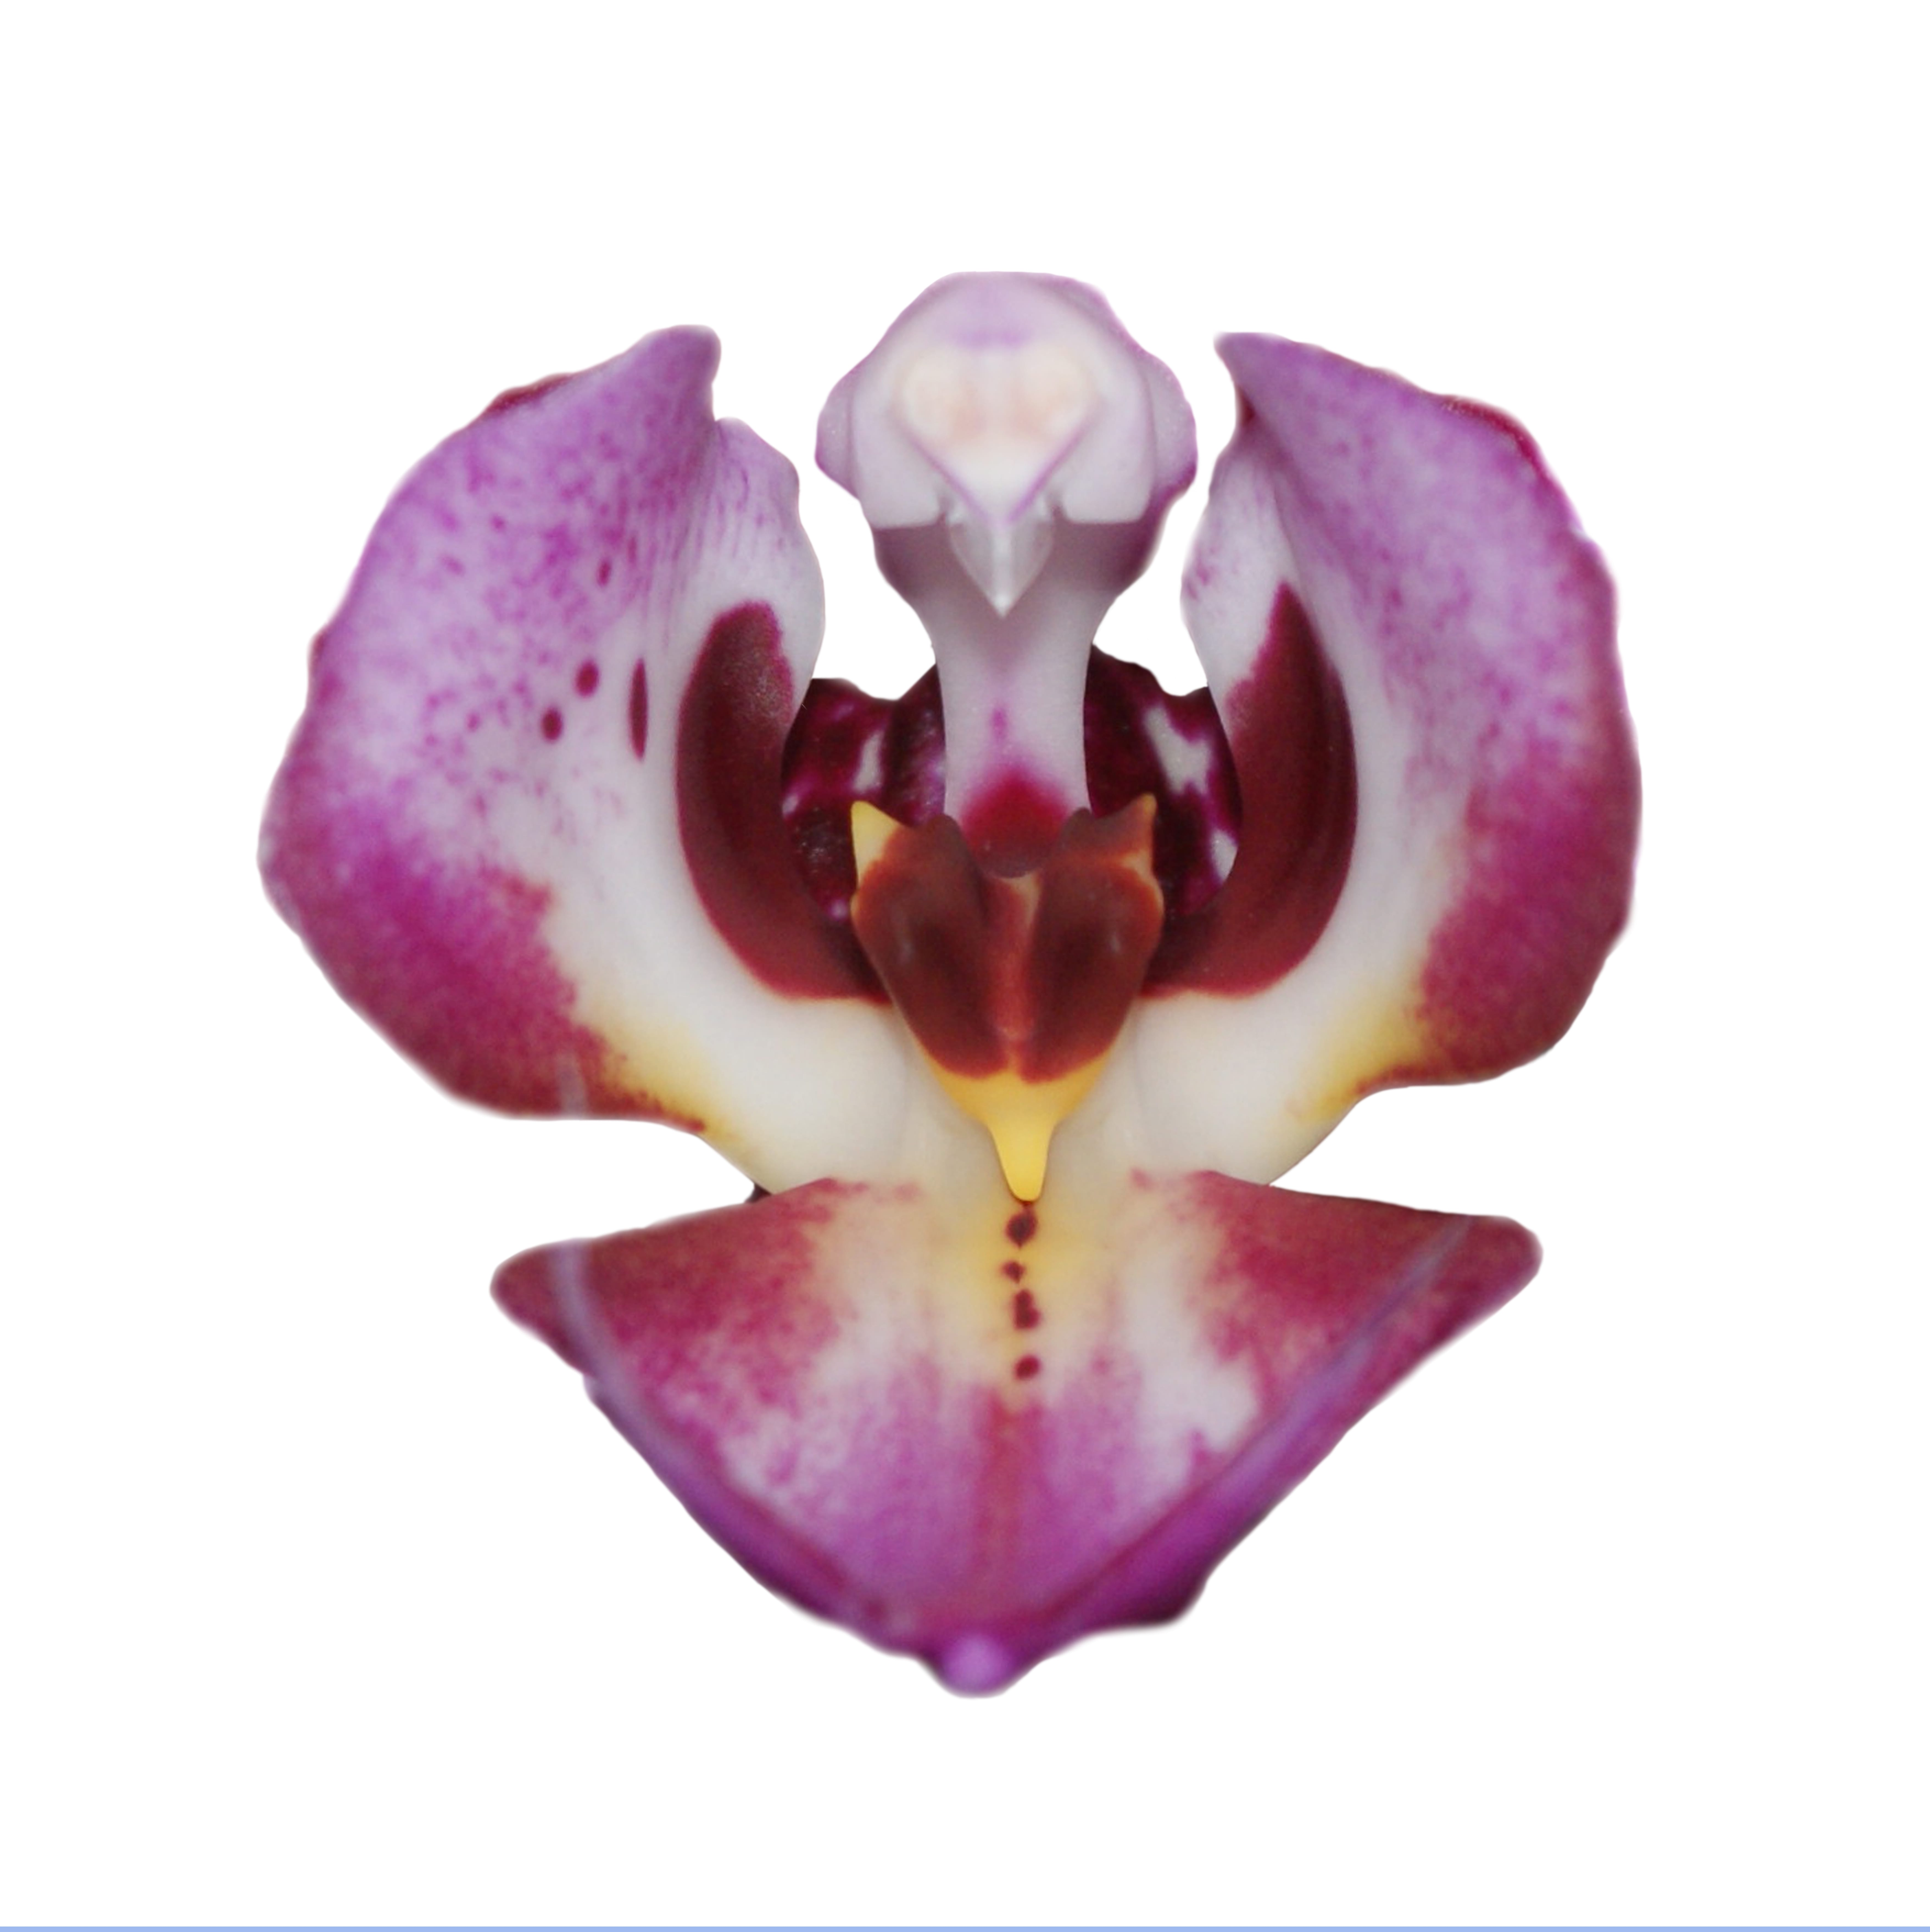 Orchid 2g my attempts to diminish the stereotypical view of women as sexual objects by turning the vagina into a symbol that represents strength and womanhood biocorpaavc